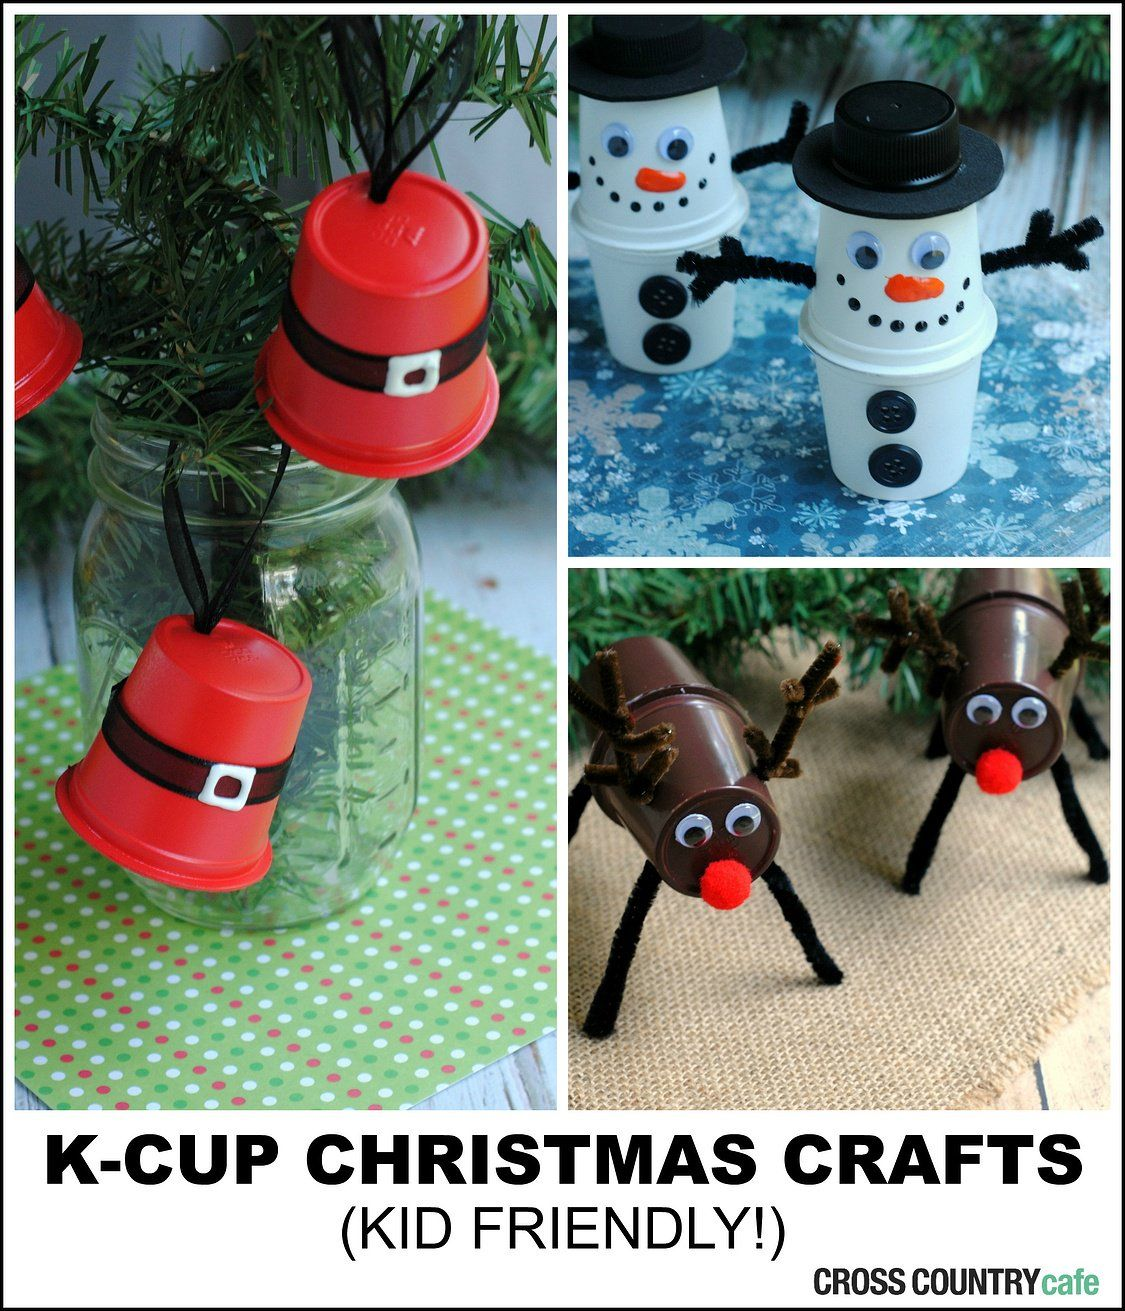 KCUP® POD CHRISTMAS UPCYCLING - K cup crafts, Cup crafts, Christmas crafts, Xmas crafts, Crafts, Coffee pods crafts - Upcycle Keurig Kcup pods into adorable Christmas crafts that are kid friendly!